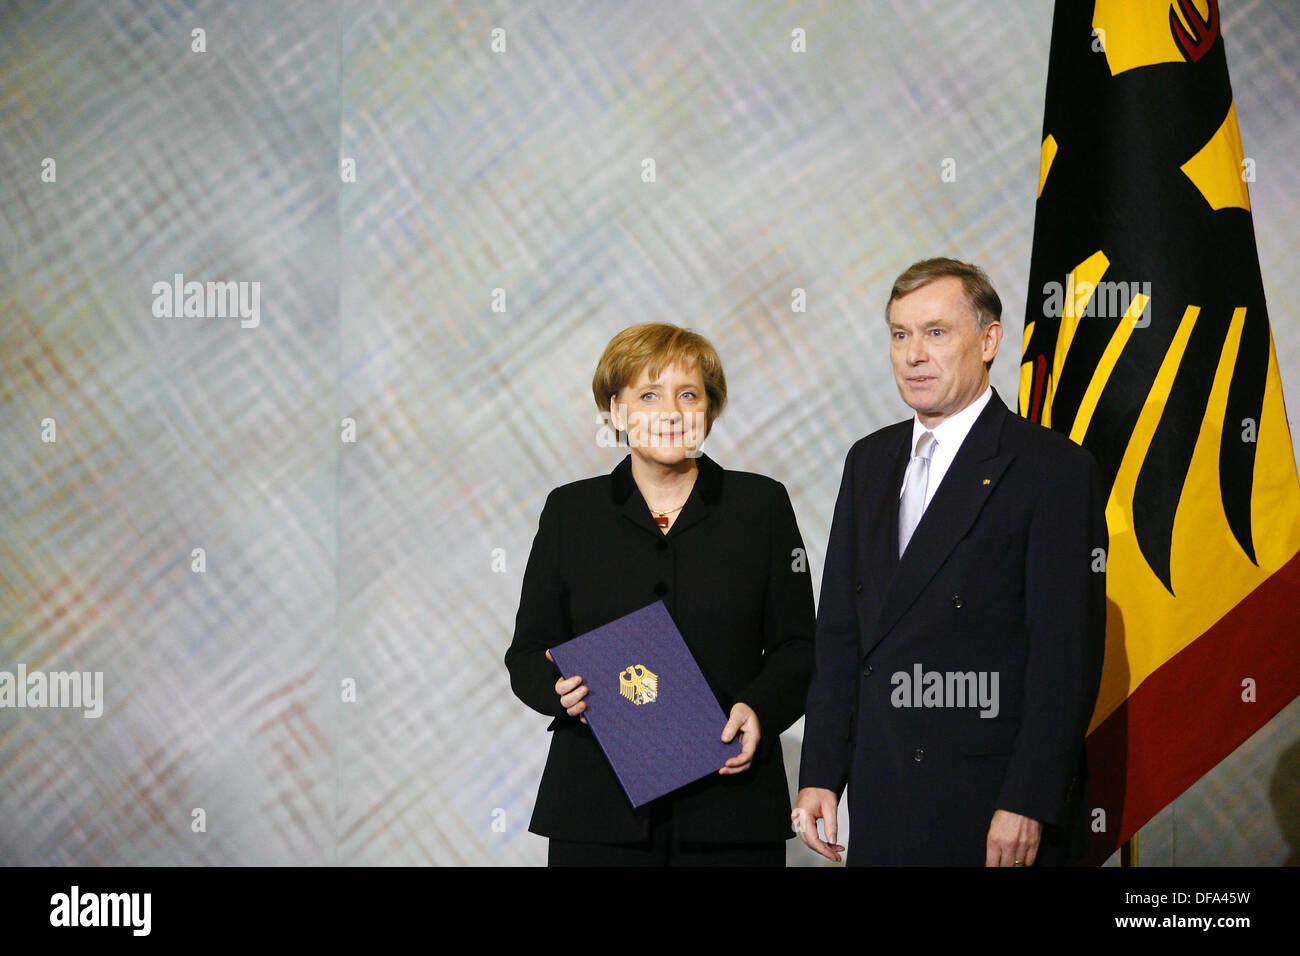 Head of state Horst Köhler (r) hands over the certificate of appointment to Angela Merkel (22.11.2005) who was elected as chancellor.  Foto: Michael Hanschke dpa/lbn +++(c) dpa - Report+++ - Stock Image